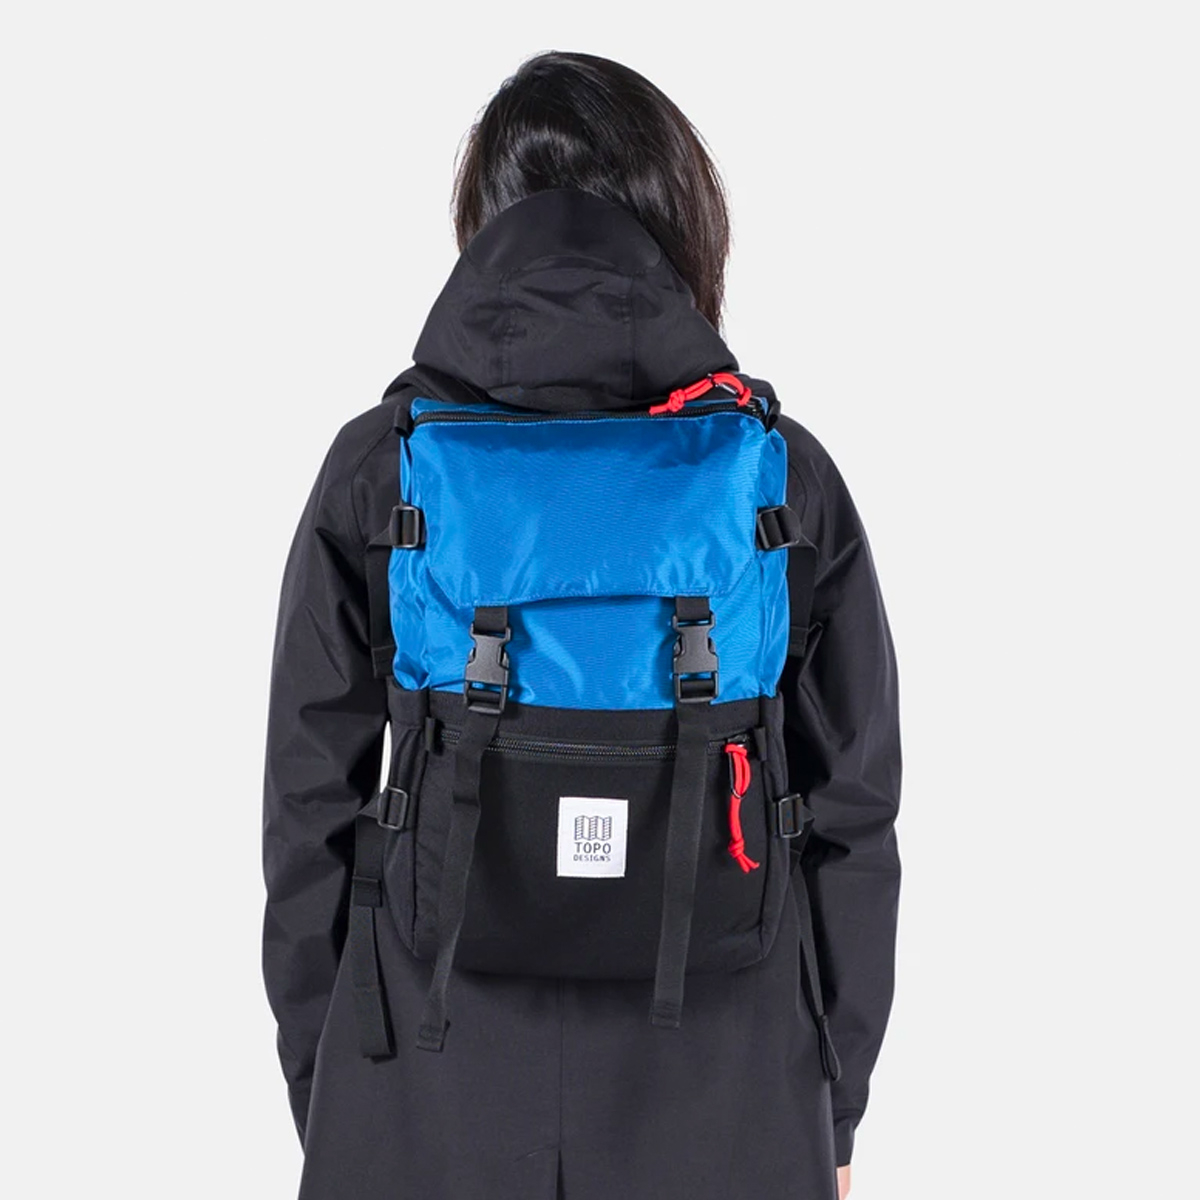 Topo Designs Rover Pack Classic Blue/Black, timeless backpack with great functionalities